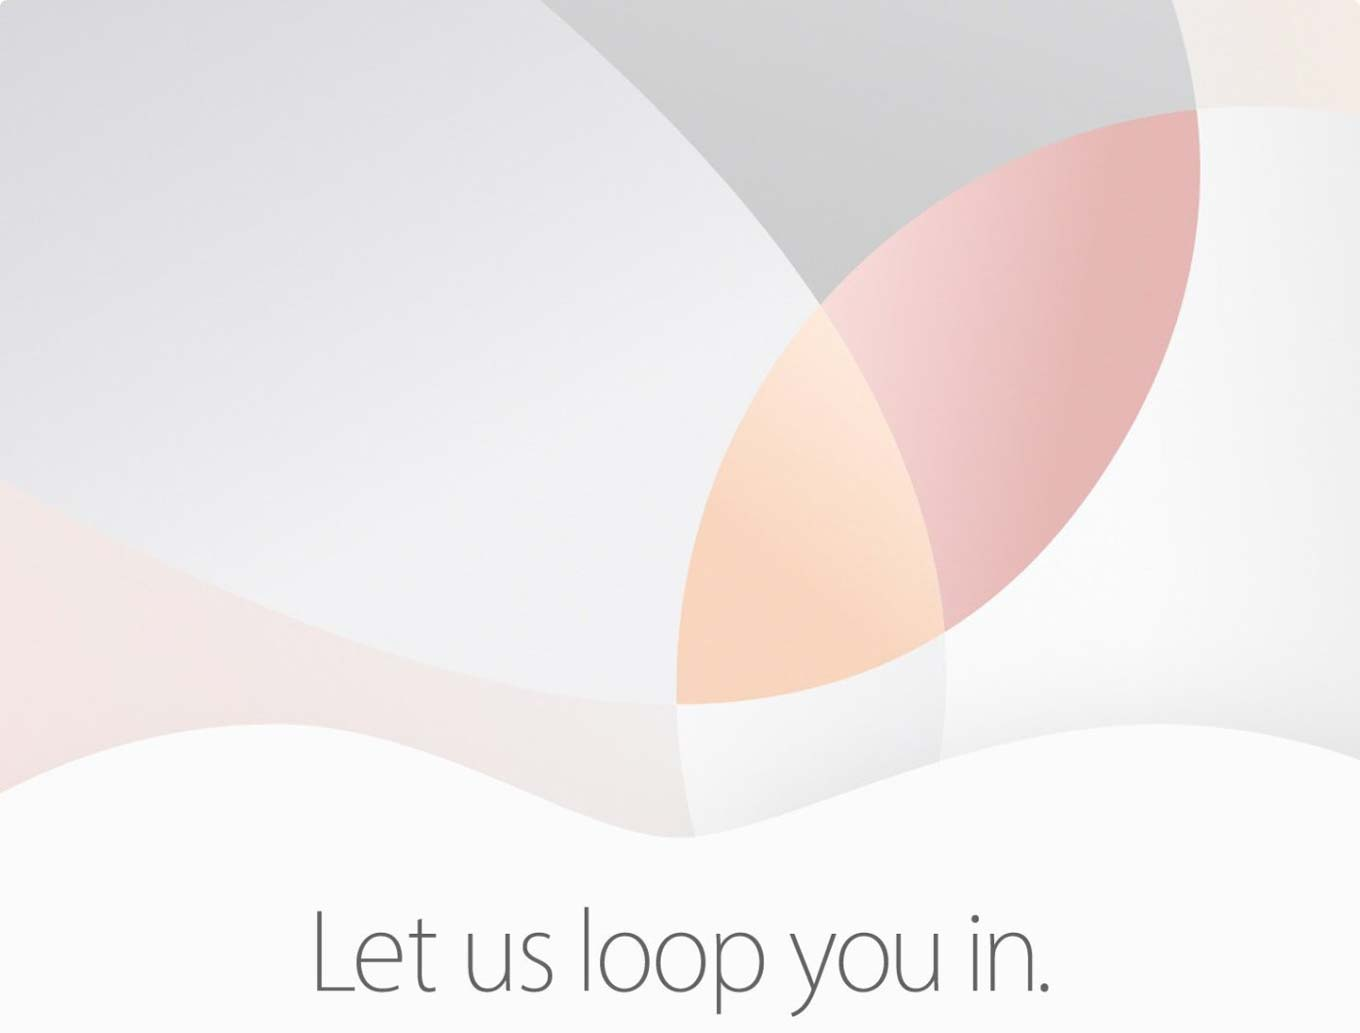 Apple Event officially scheduled for March 21